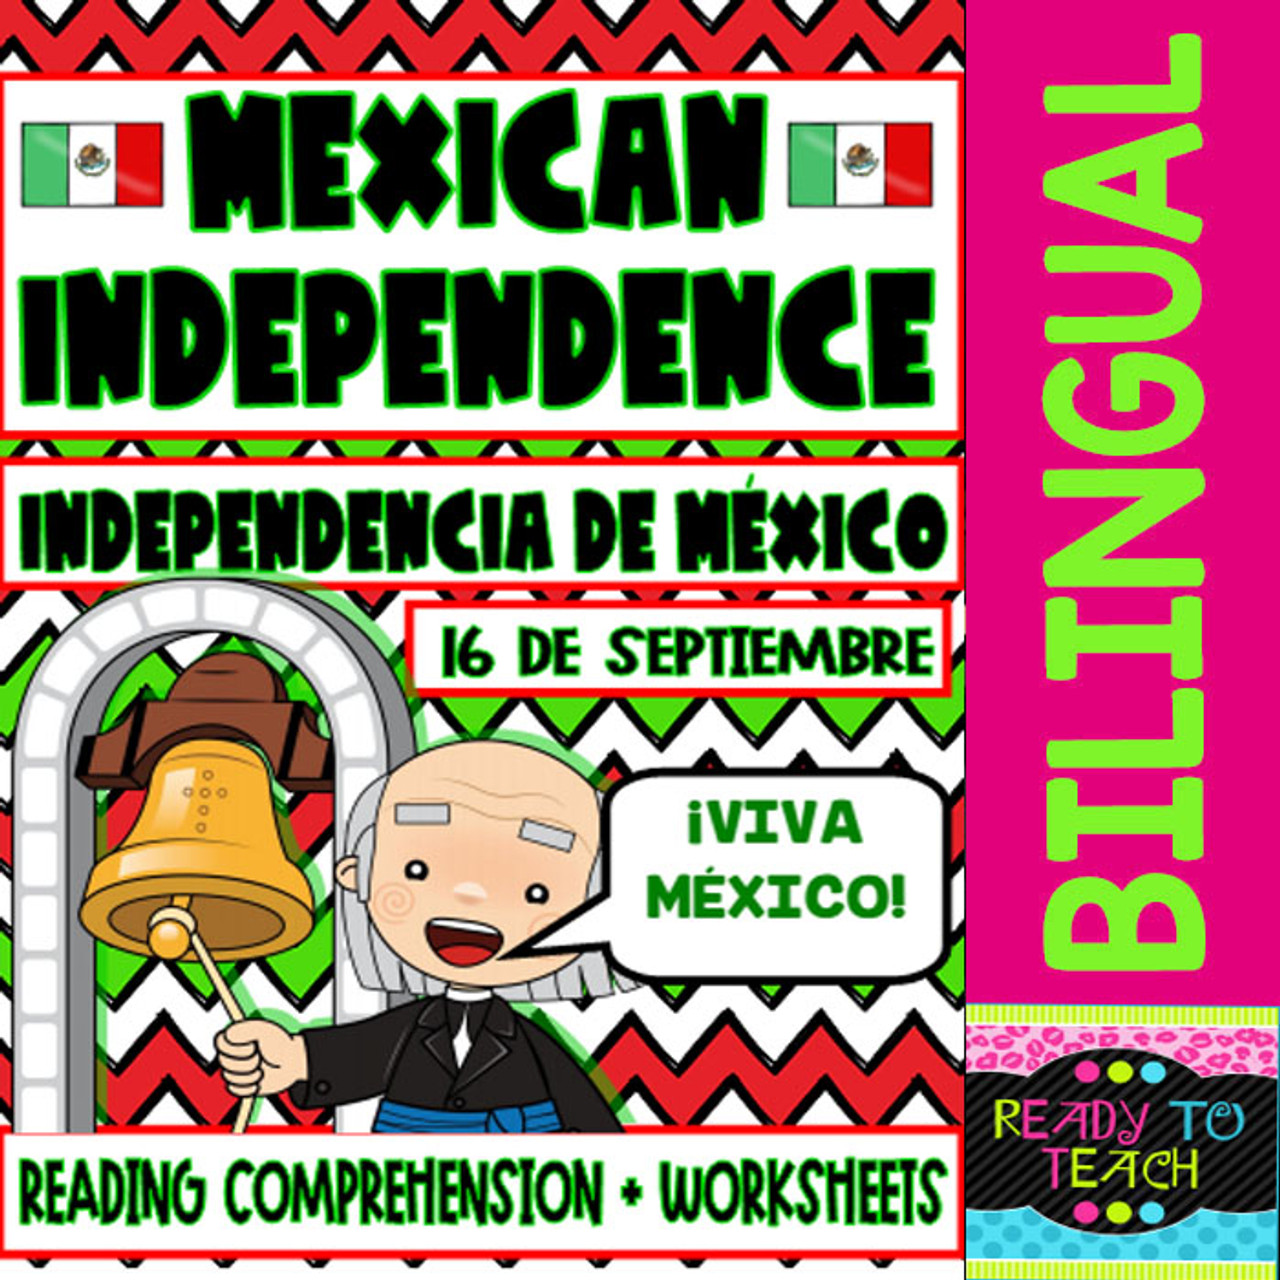 hight resolution of Mexican Independence - Independencia de Mexico - Reading and Worksheets -  Bilingual - Amped Up Learning